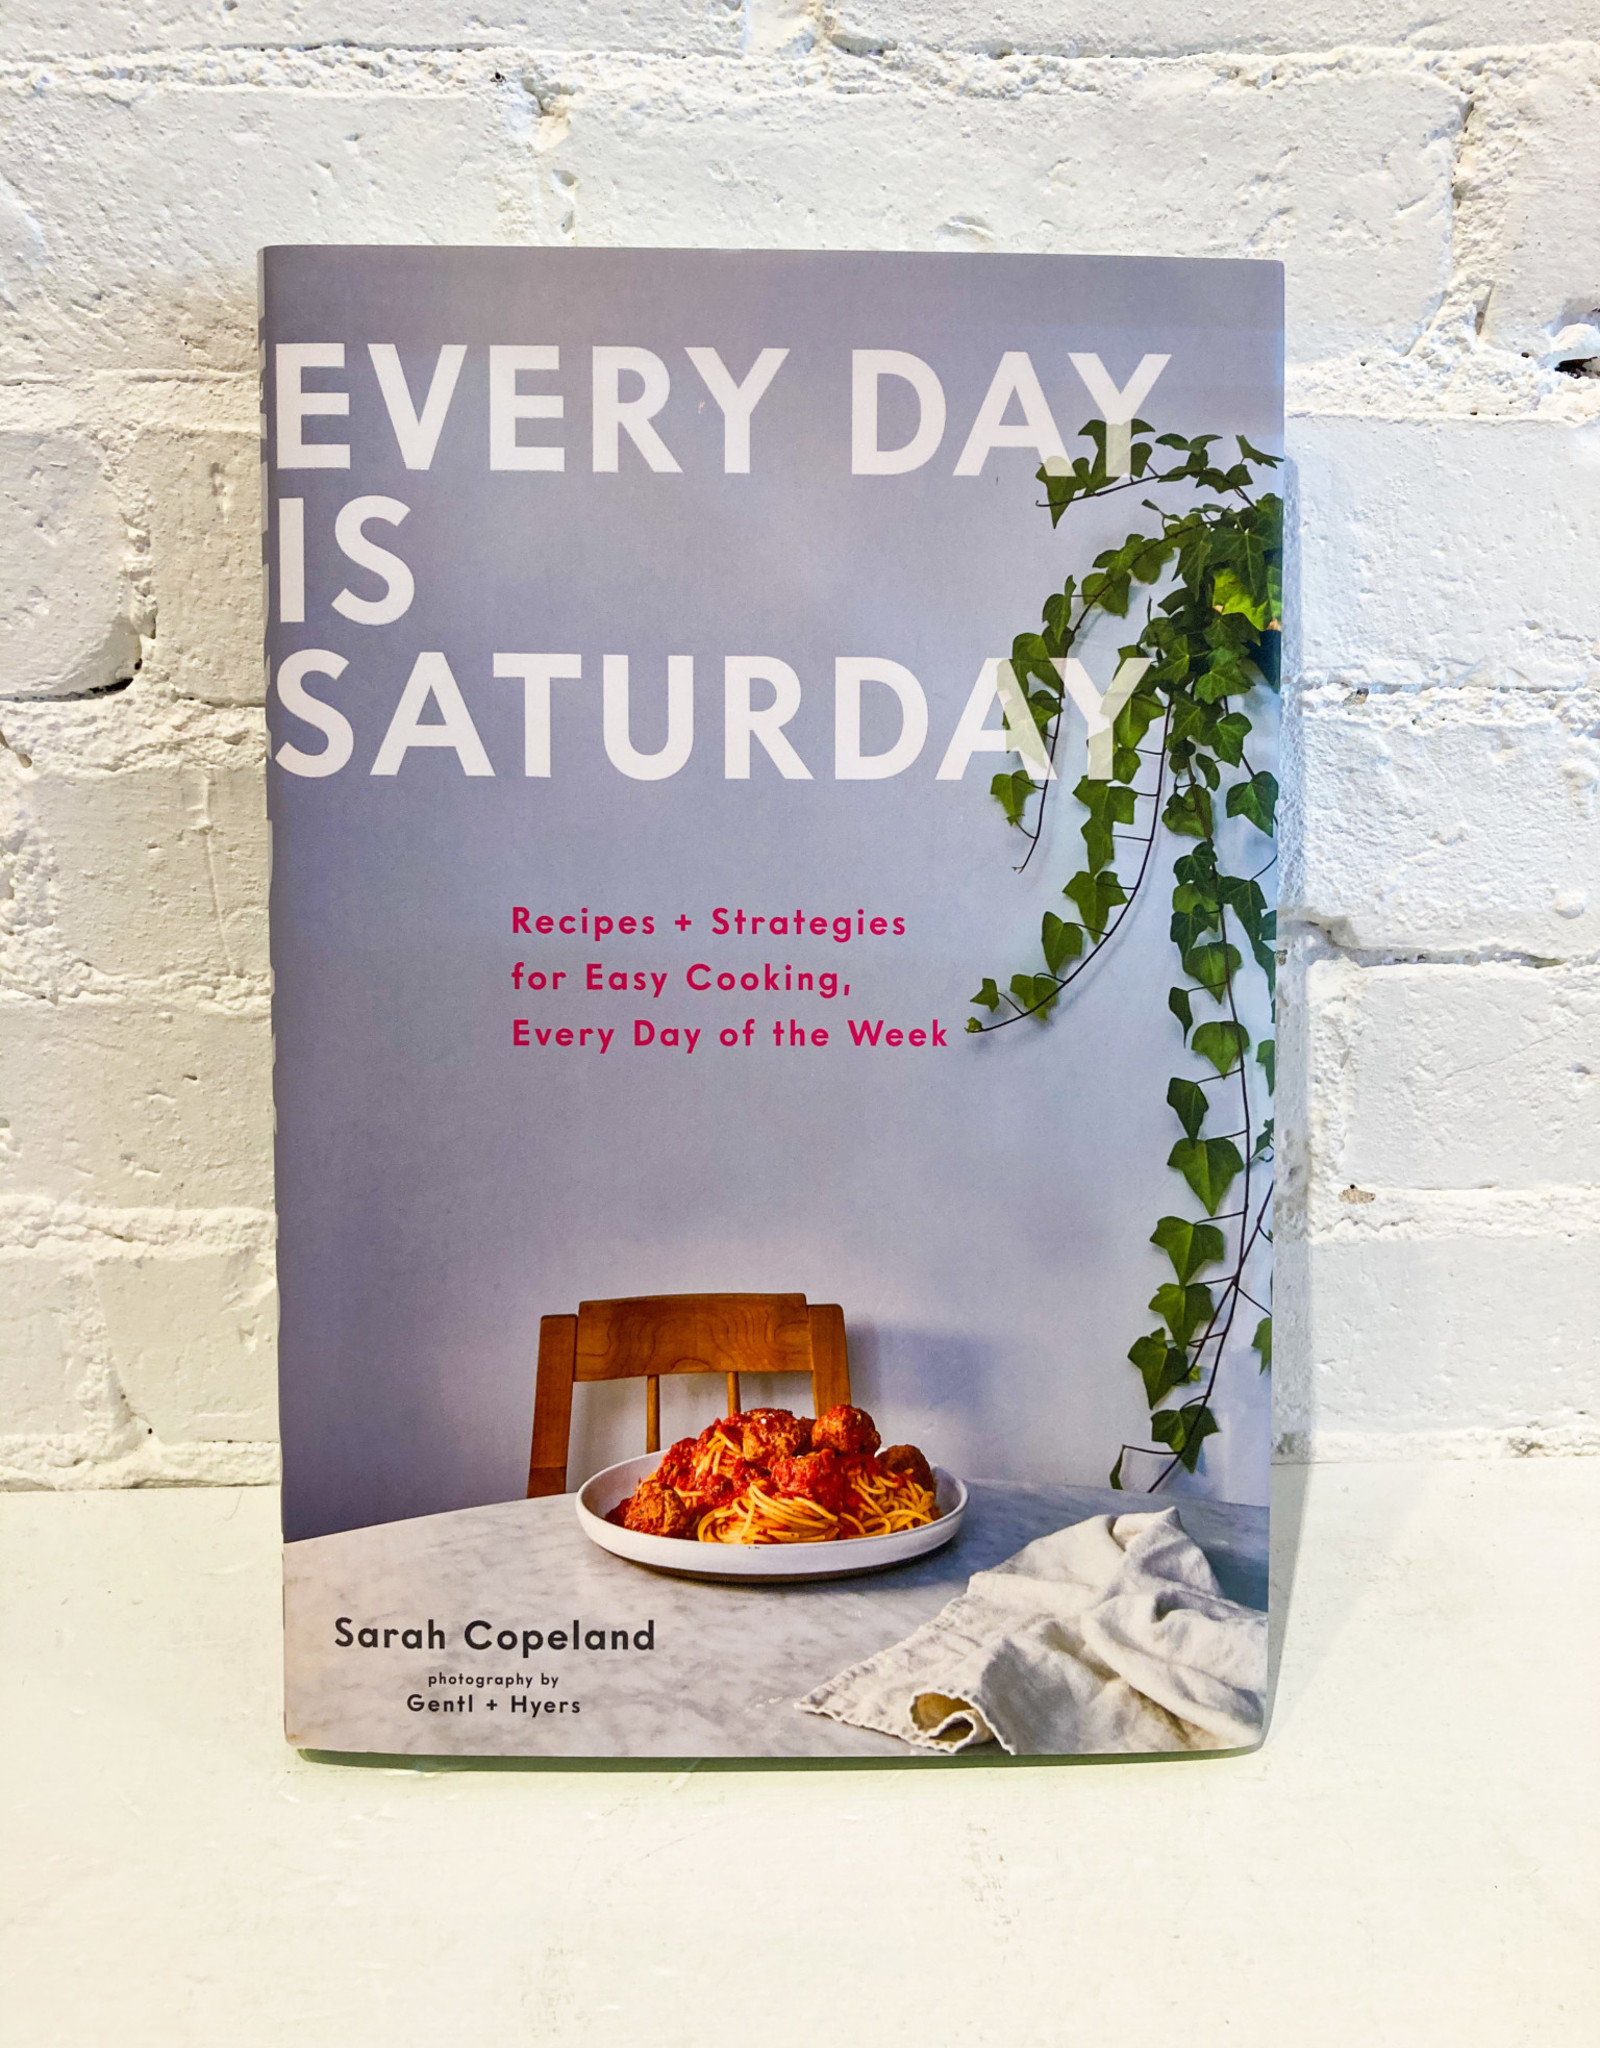 Every Day is Saturday: Recipes + Strategies for Easy Cooking, Every Day of the Week by Sarah Copeland